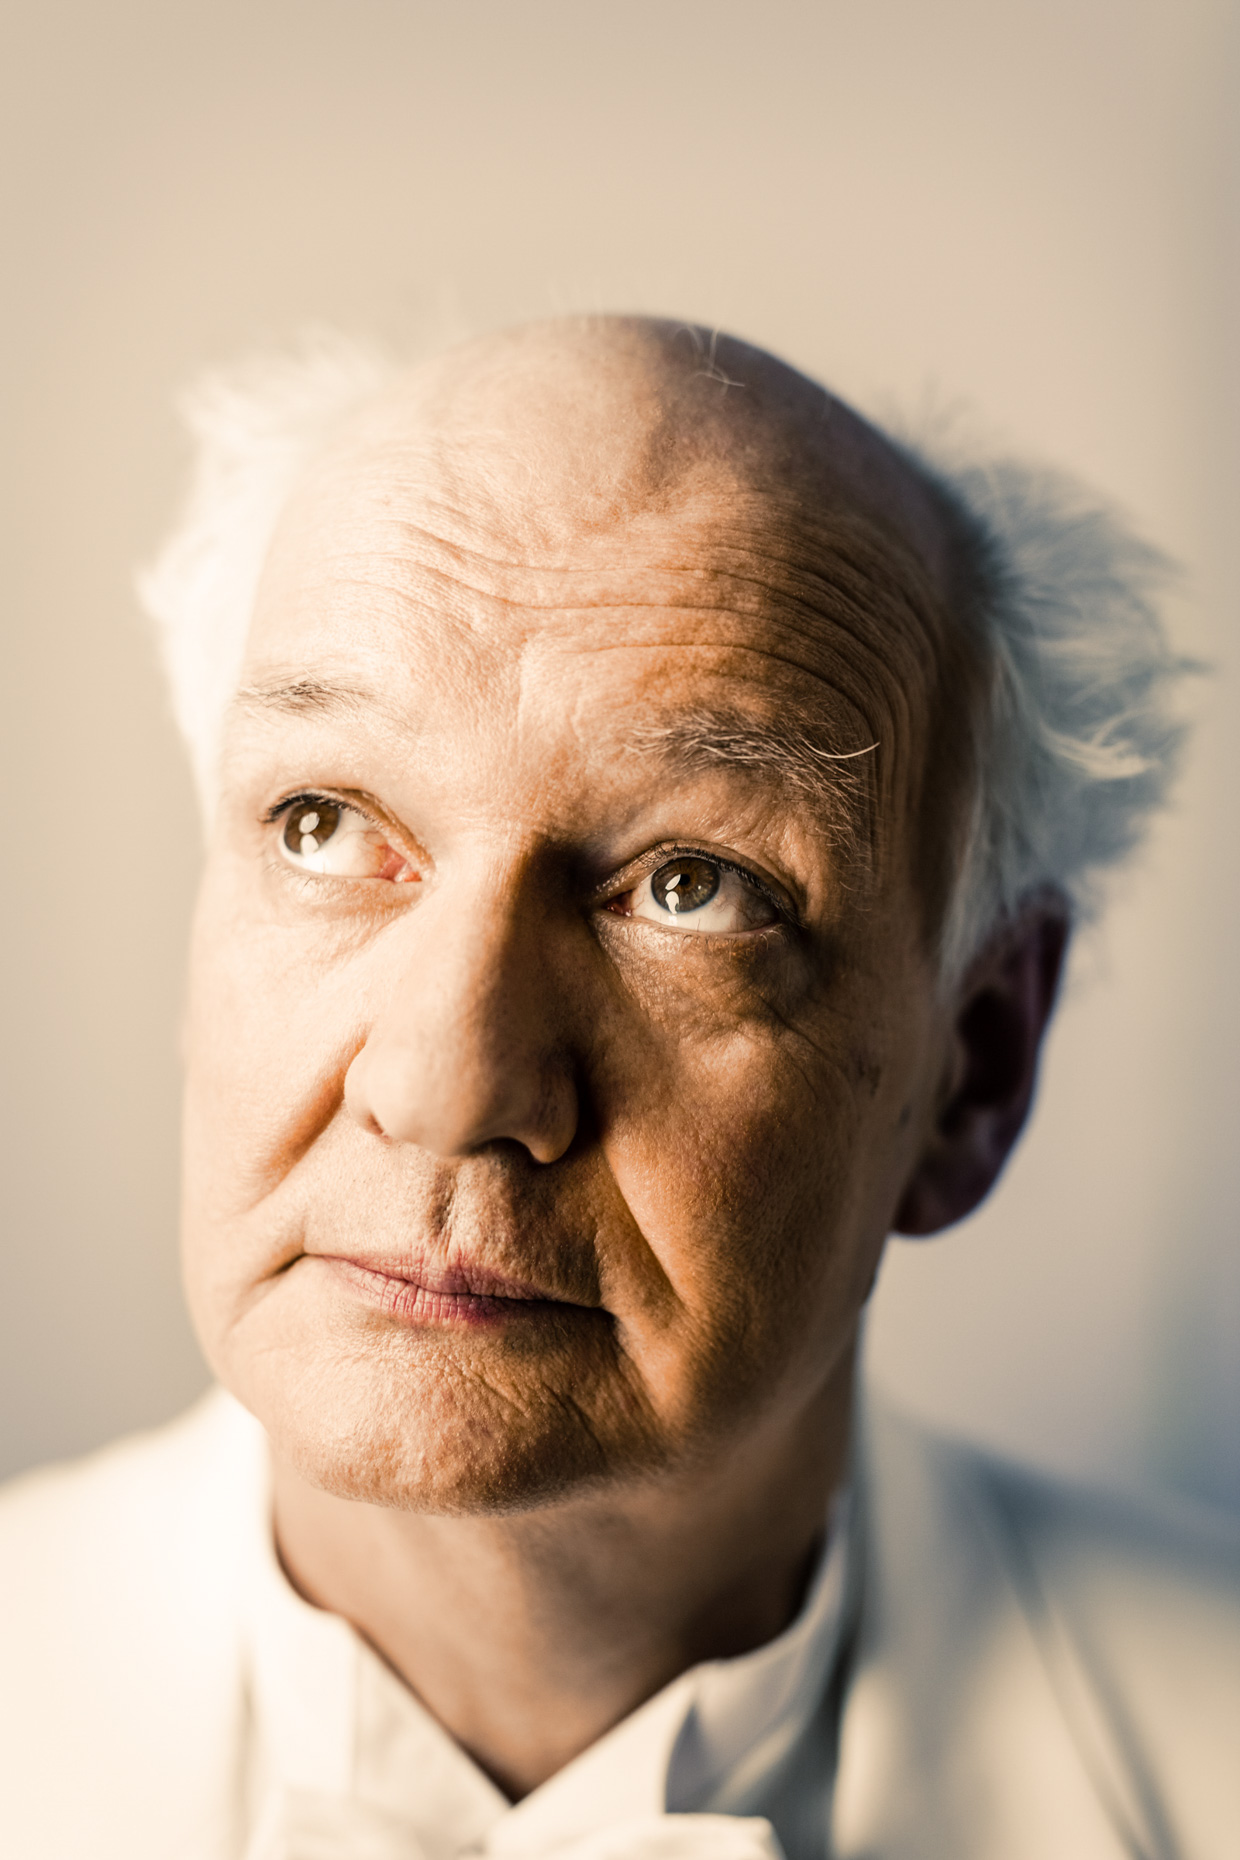 Improv comedian Colin Mochrie poses for heroic and humor portrait photographer Andy Batt